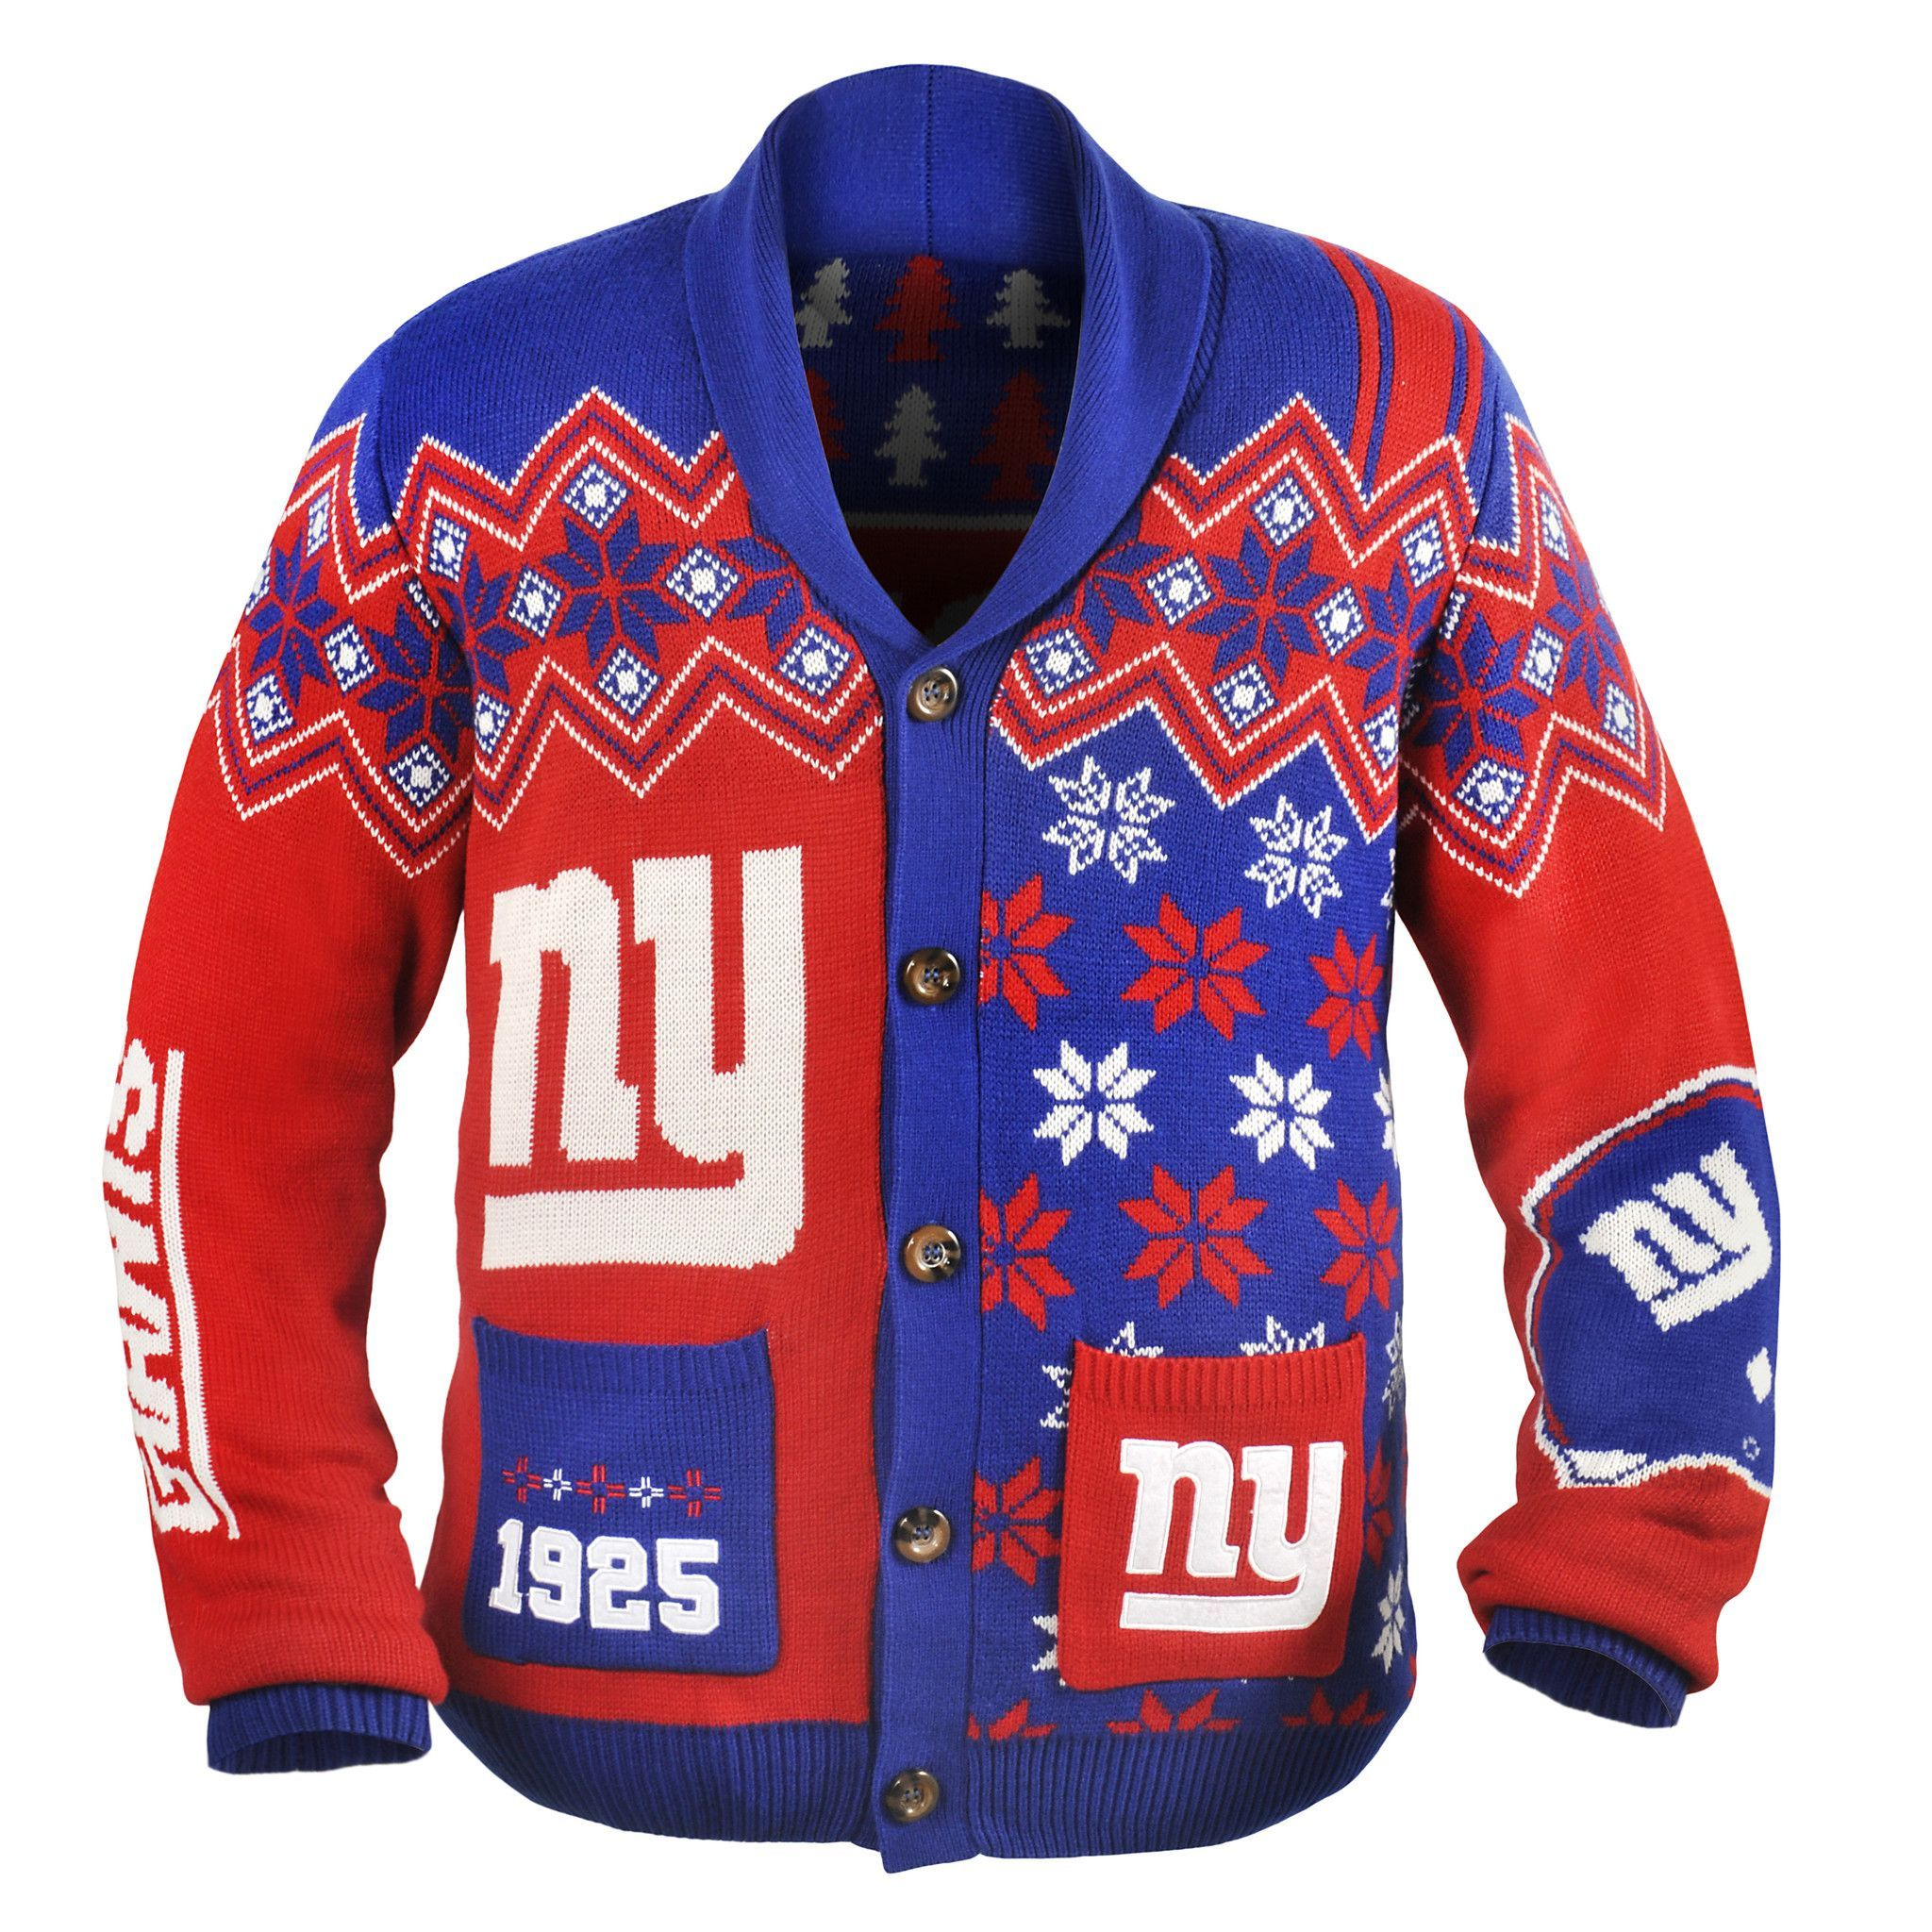 New York Giants NFL Adult Ugly Cardigan Sweater | Products ...